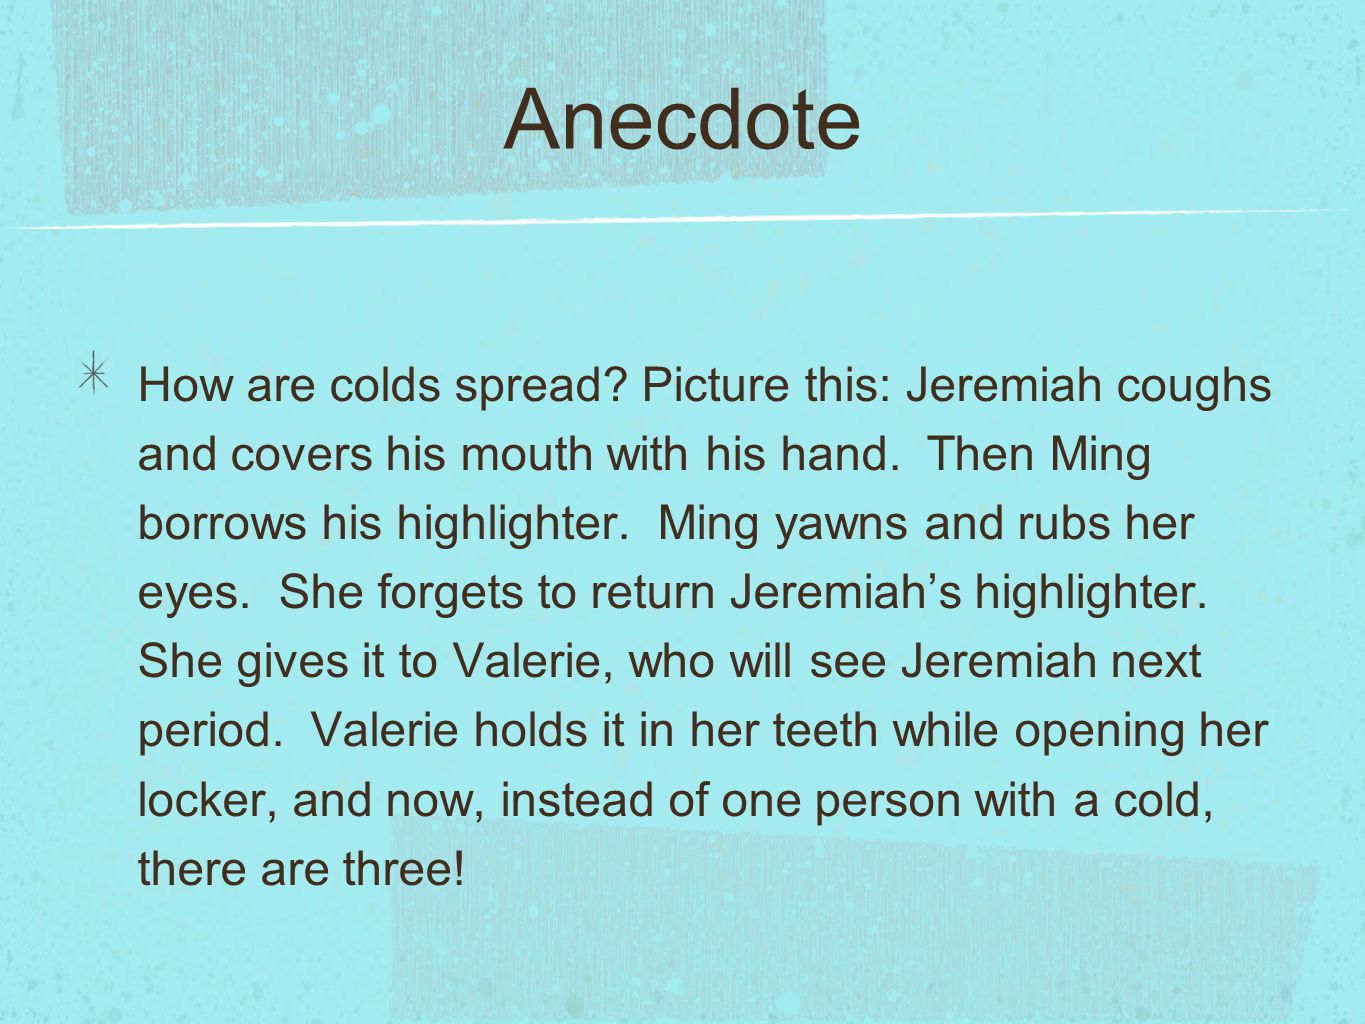 Anecdote How are colds spread? Picture this: Jeremiah coughs and covers his mouth with his hand. Then Ming borrows his highlighter. Ming yawns and rub